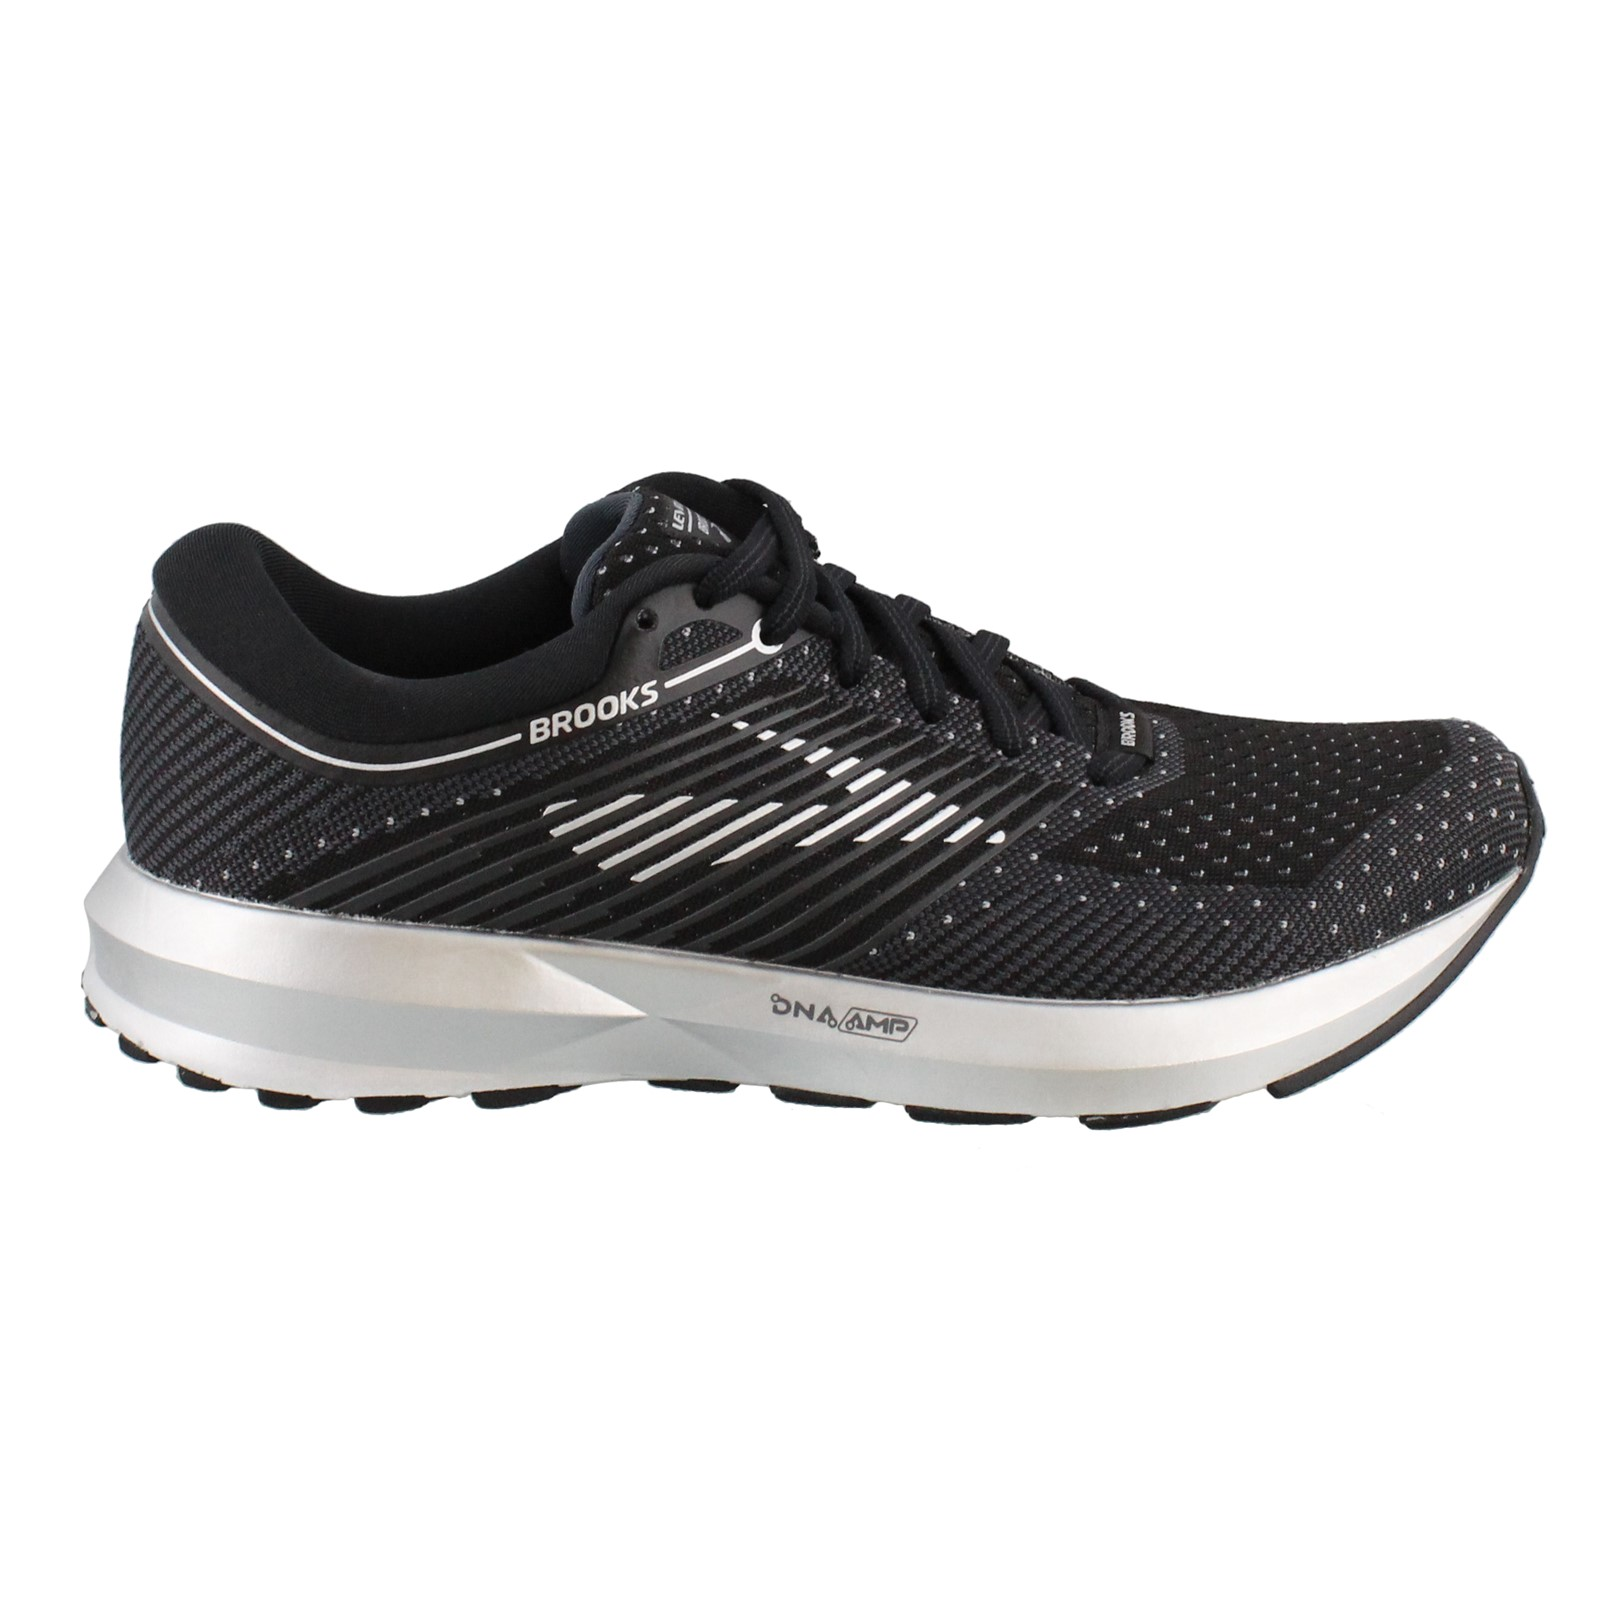 Women's Brooks, Levitate Running Sneaker